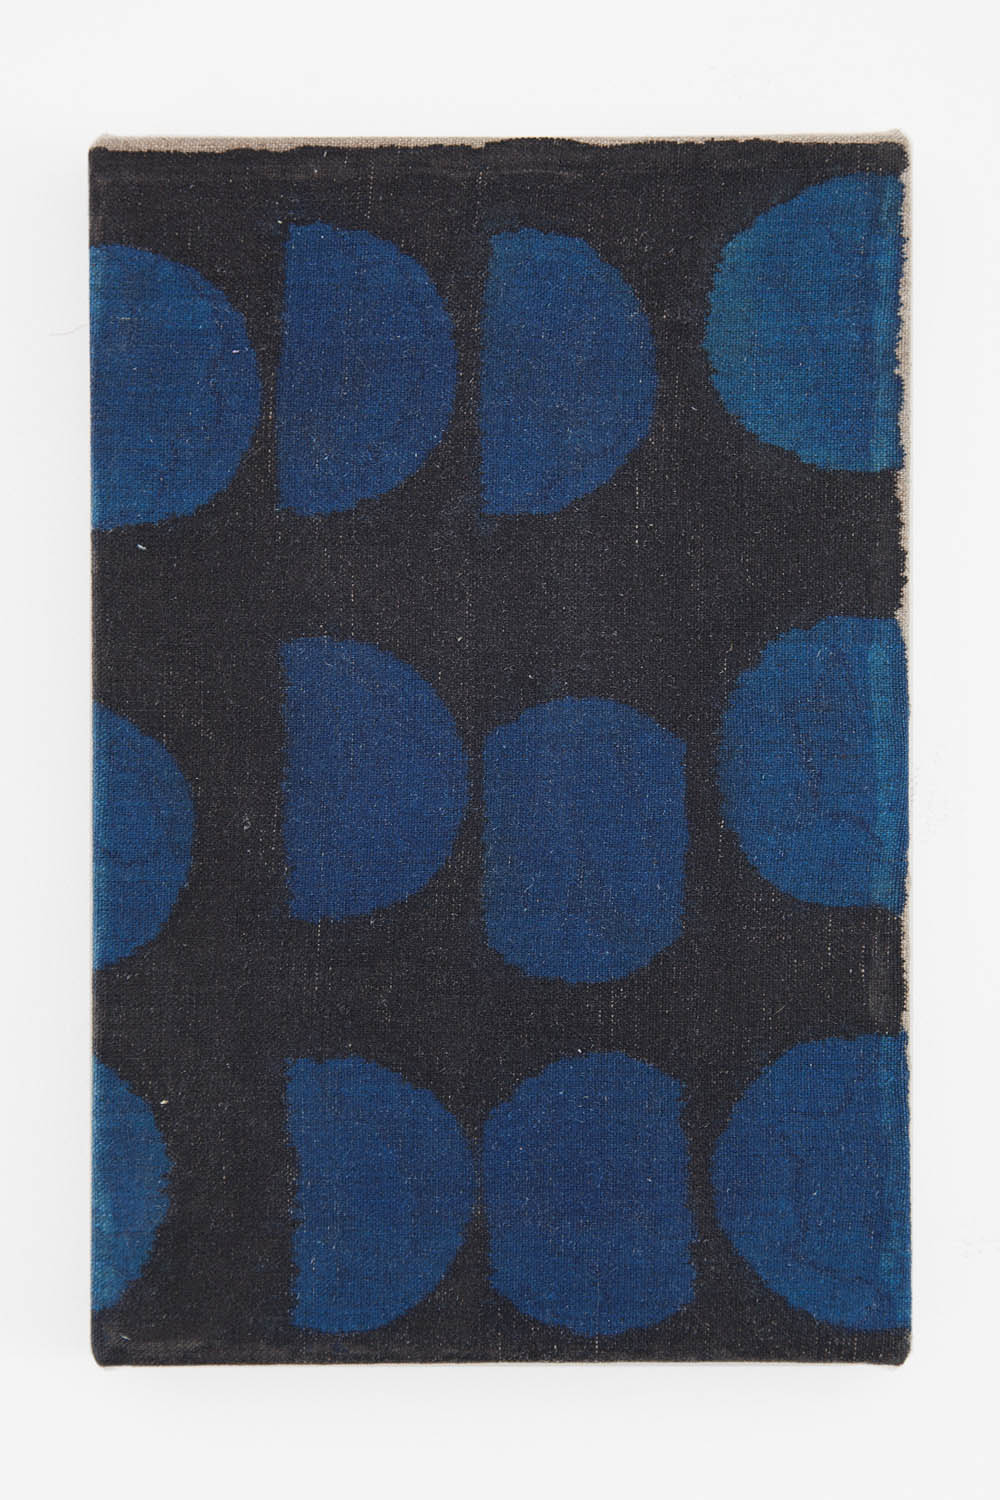 Black and Blue (Bean Can) 2014 Acrylic and India ink on linen 12 x 8 inches